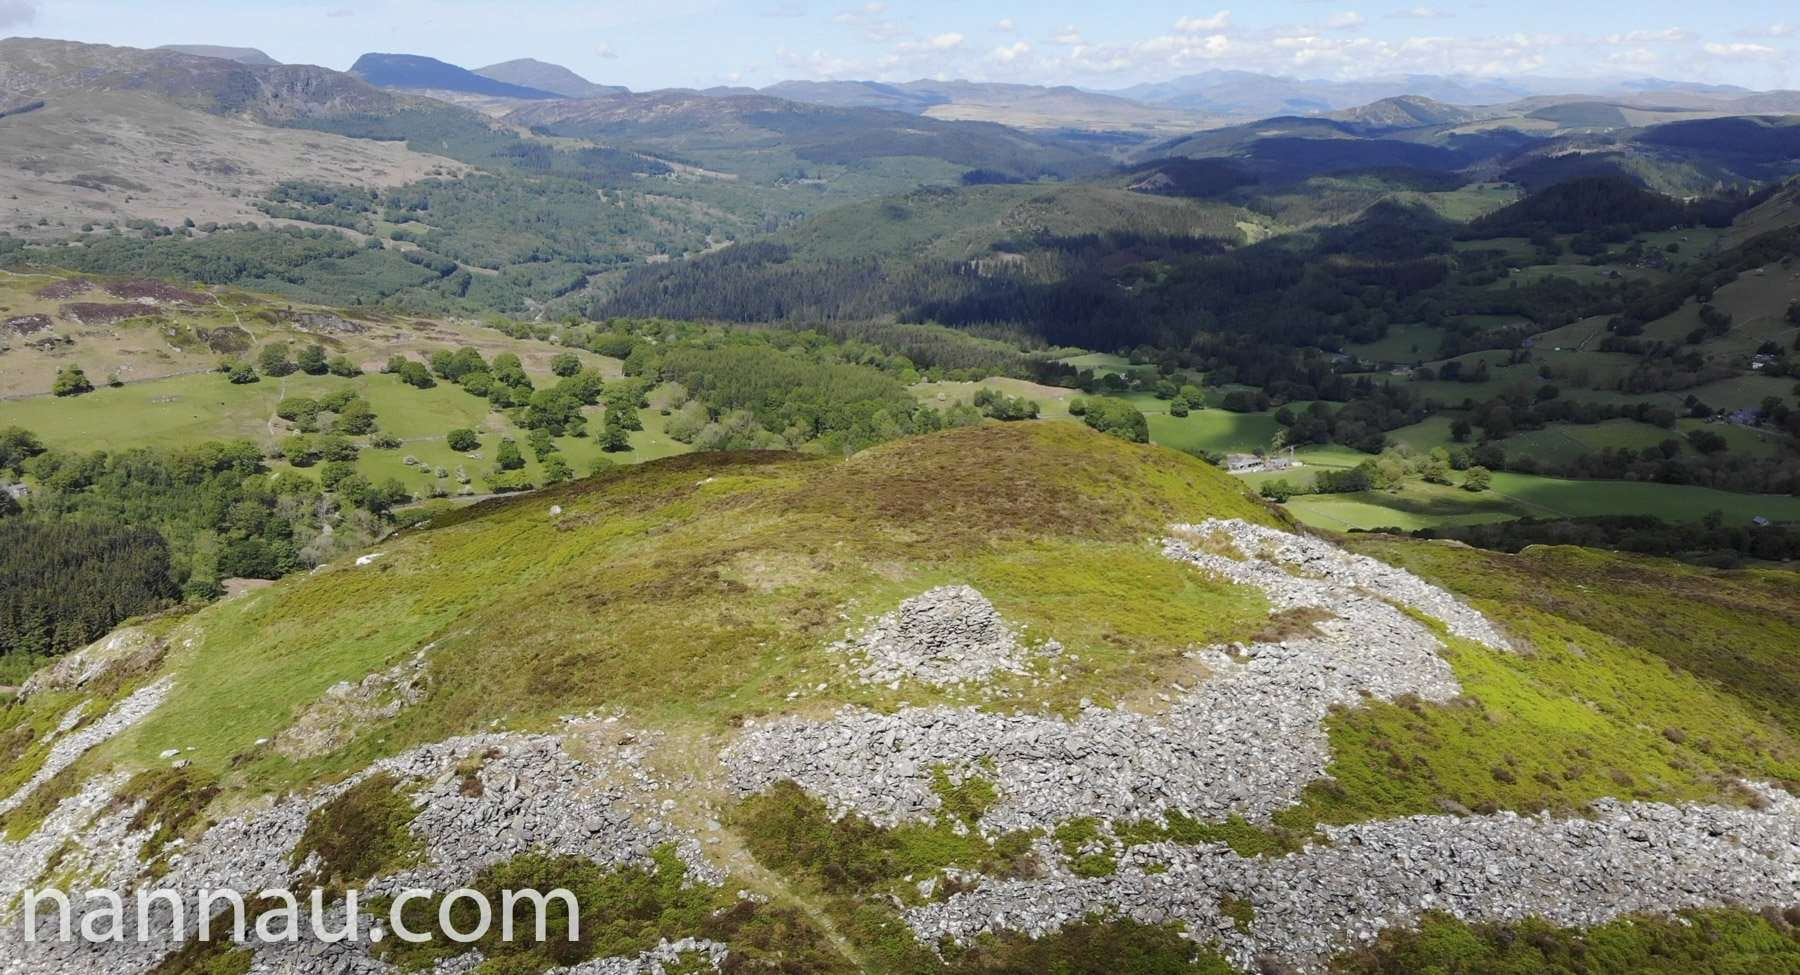 Above the Summit of Foel Offrwm (Drone)